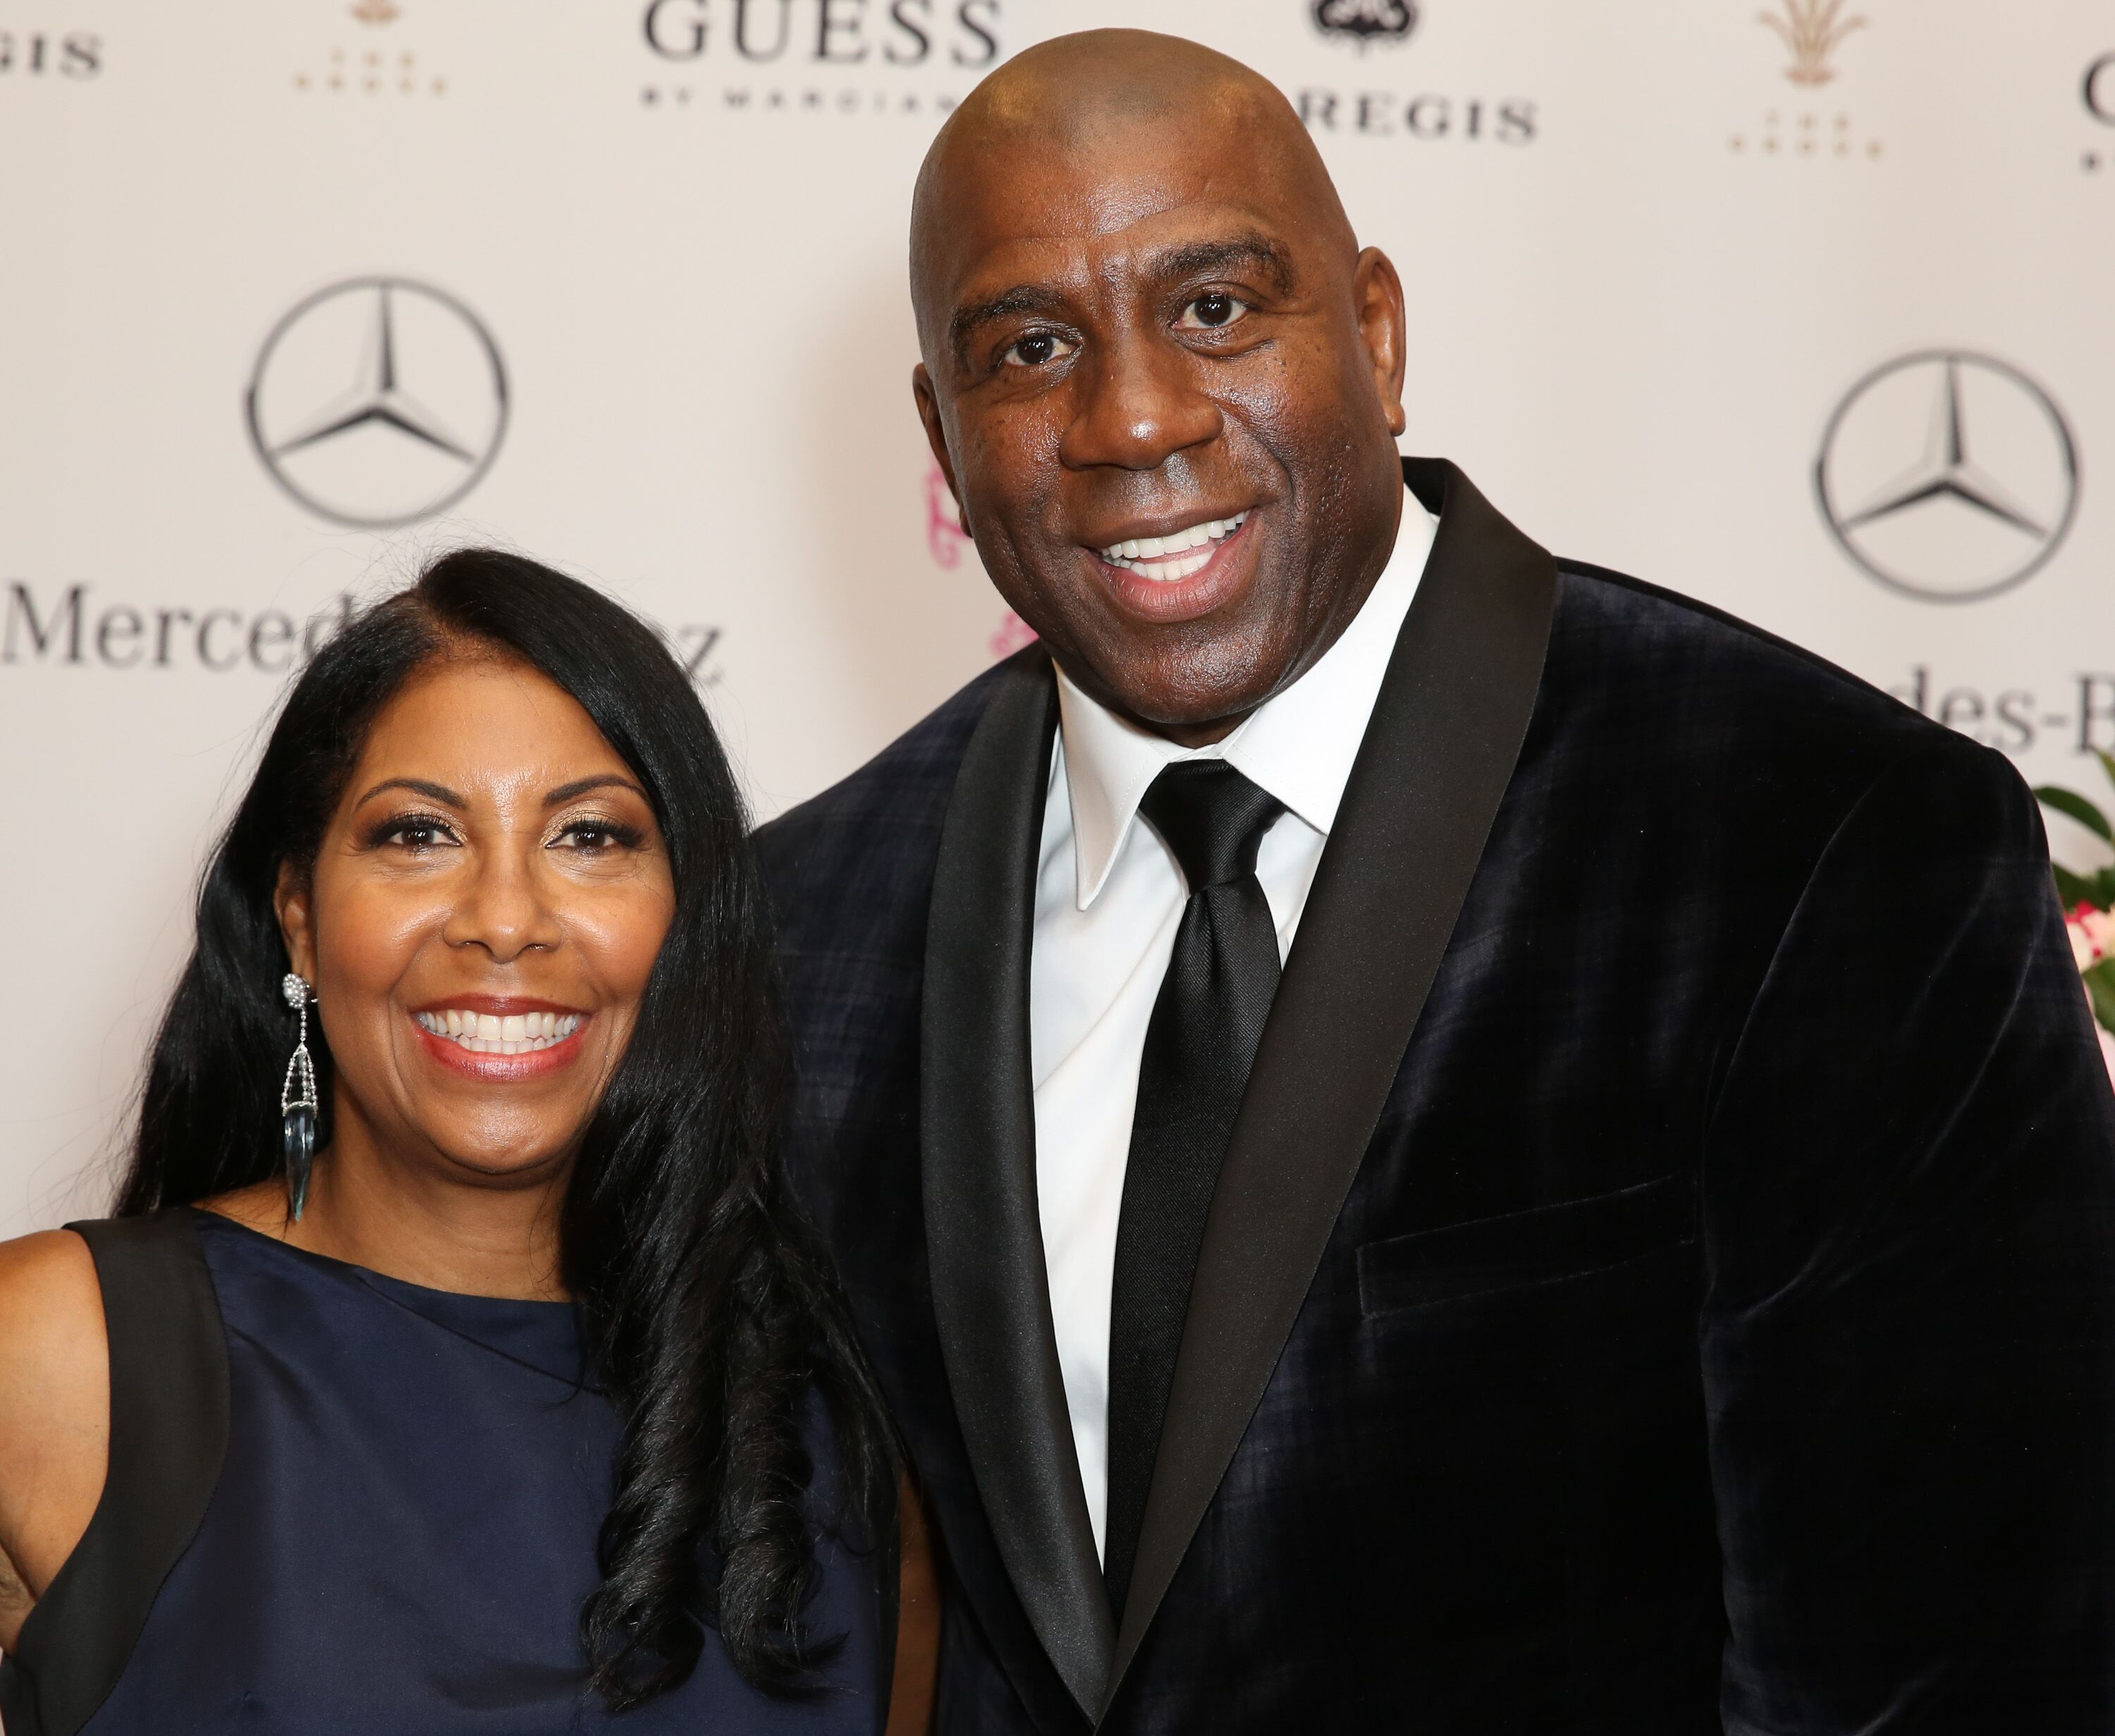 Cookie Johnson and honoree Earvin 'Magic' Johnson attend Mercedes-Benz presents the Carousel of Hope Ball benefitting Barbara Davis Center. | Source: Getty Images